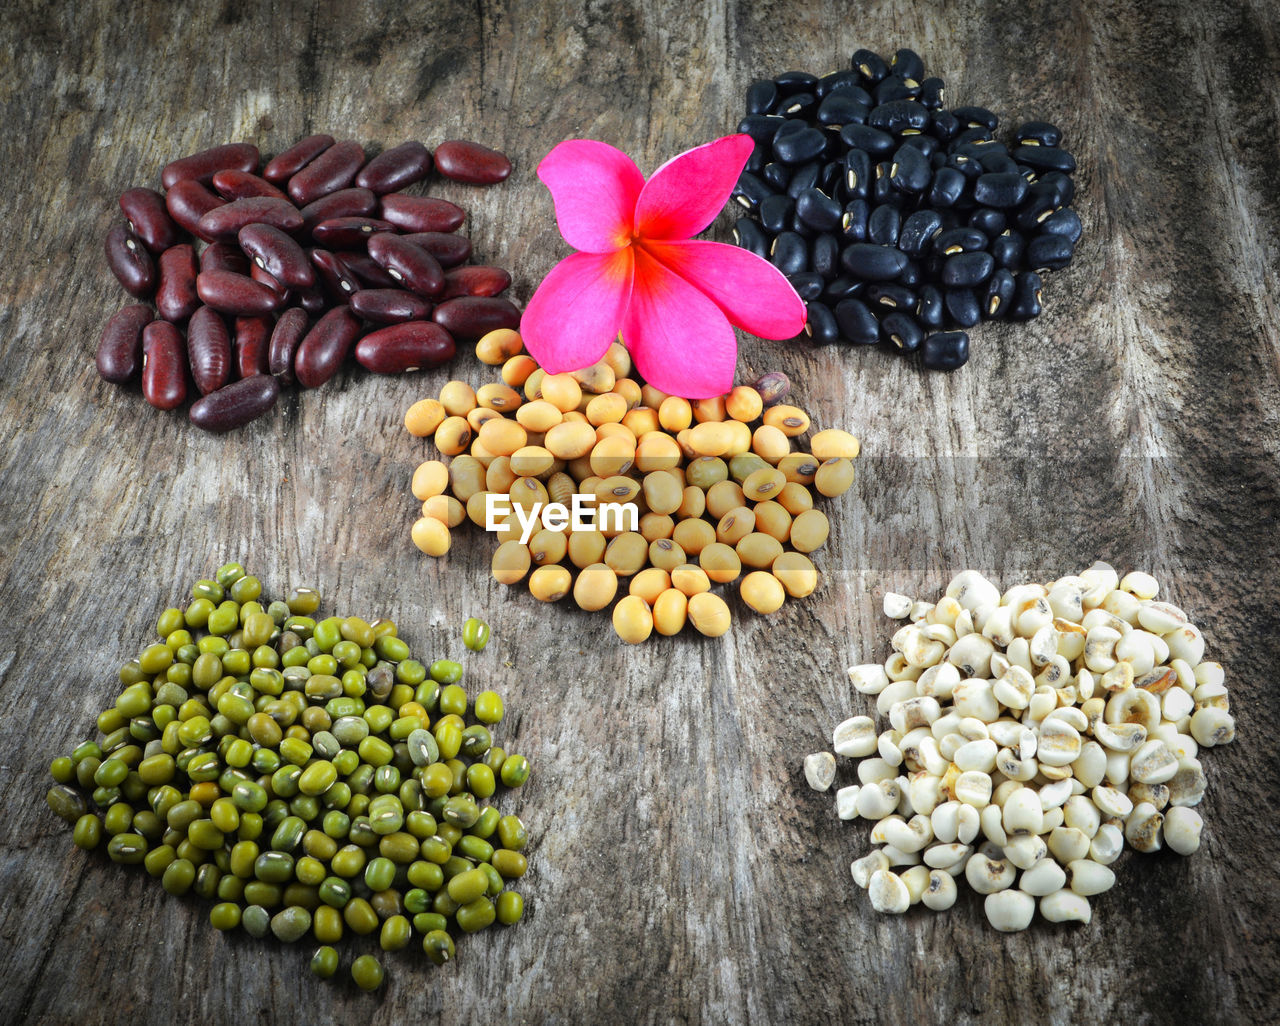 freshness, food and drink, food, no people, large group of objects, indoors, wood - material, still life, table, directly above, wellbeing, close-up, plant, high angle view, choice, healthy eating, nature, variation, seed, raw food, vegetarian food, legume family